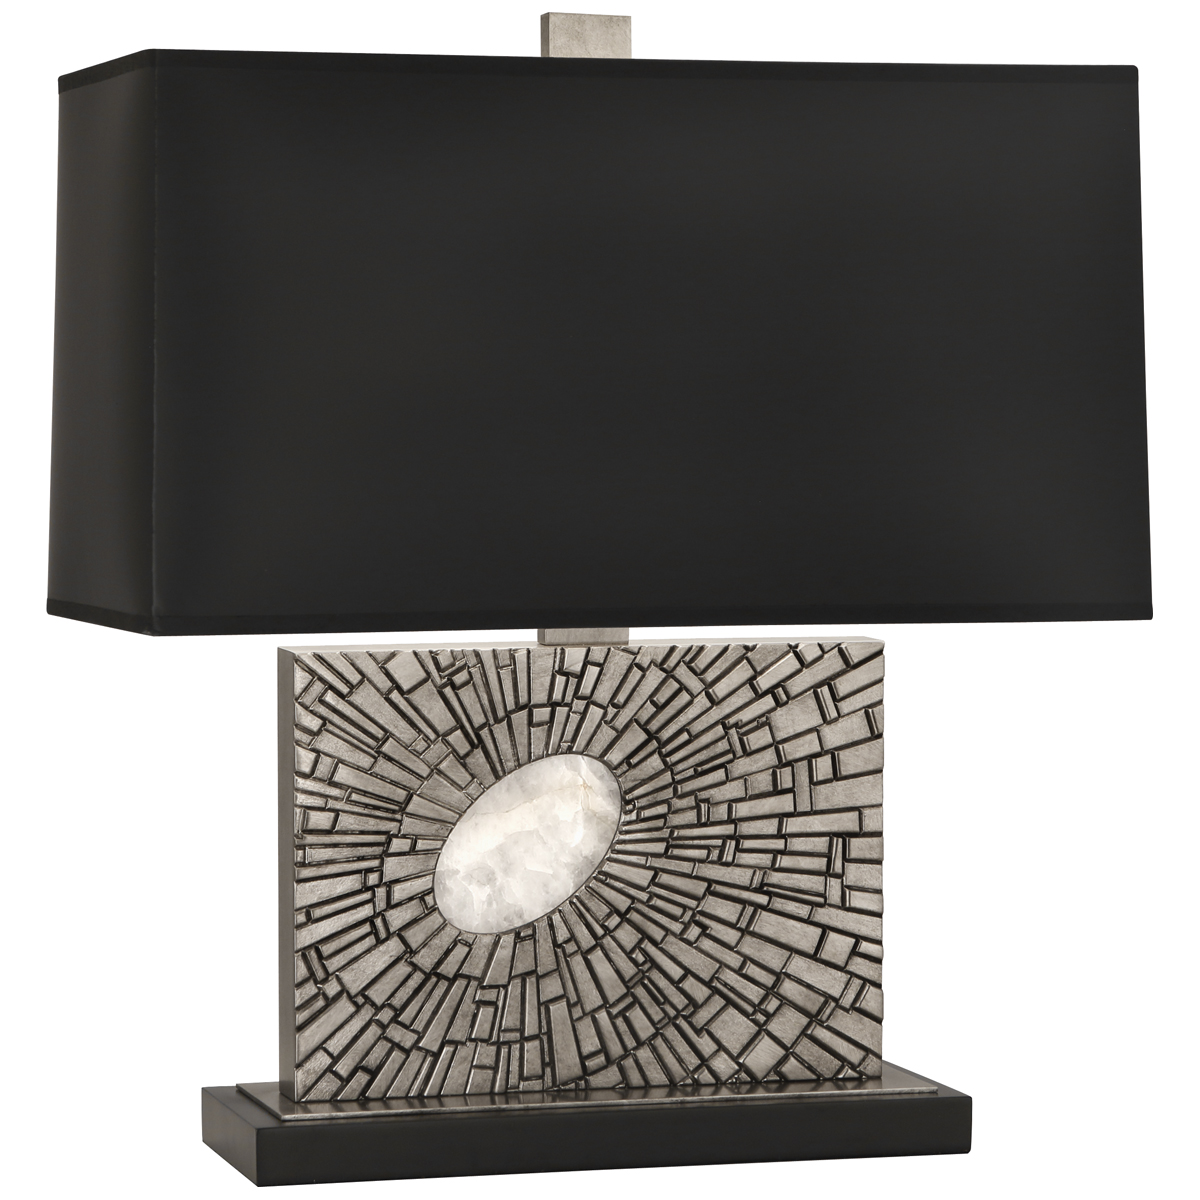 Goliath Table Lamp Style #S416B